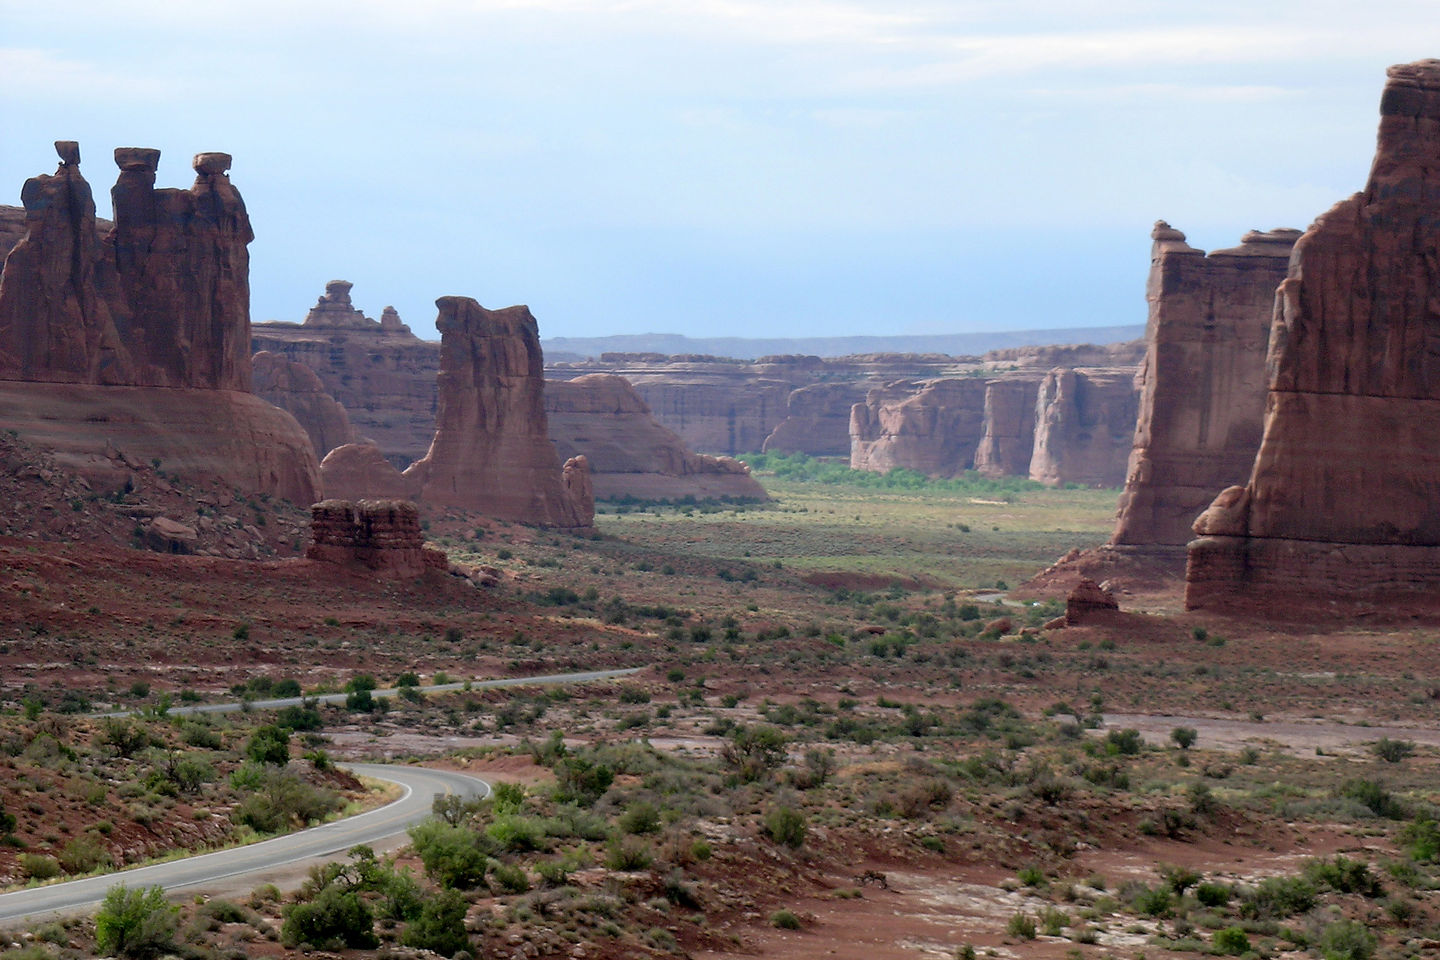 Arches National Park after the thunderstorm